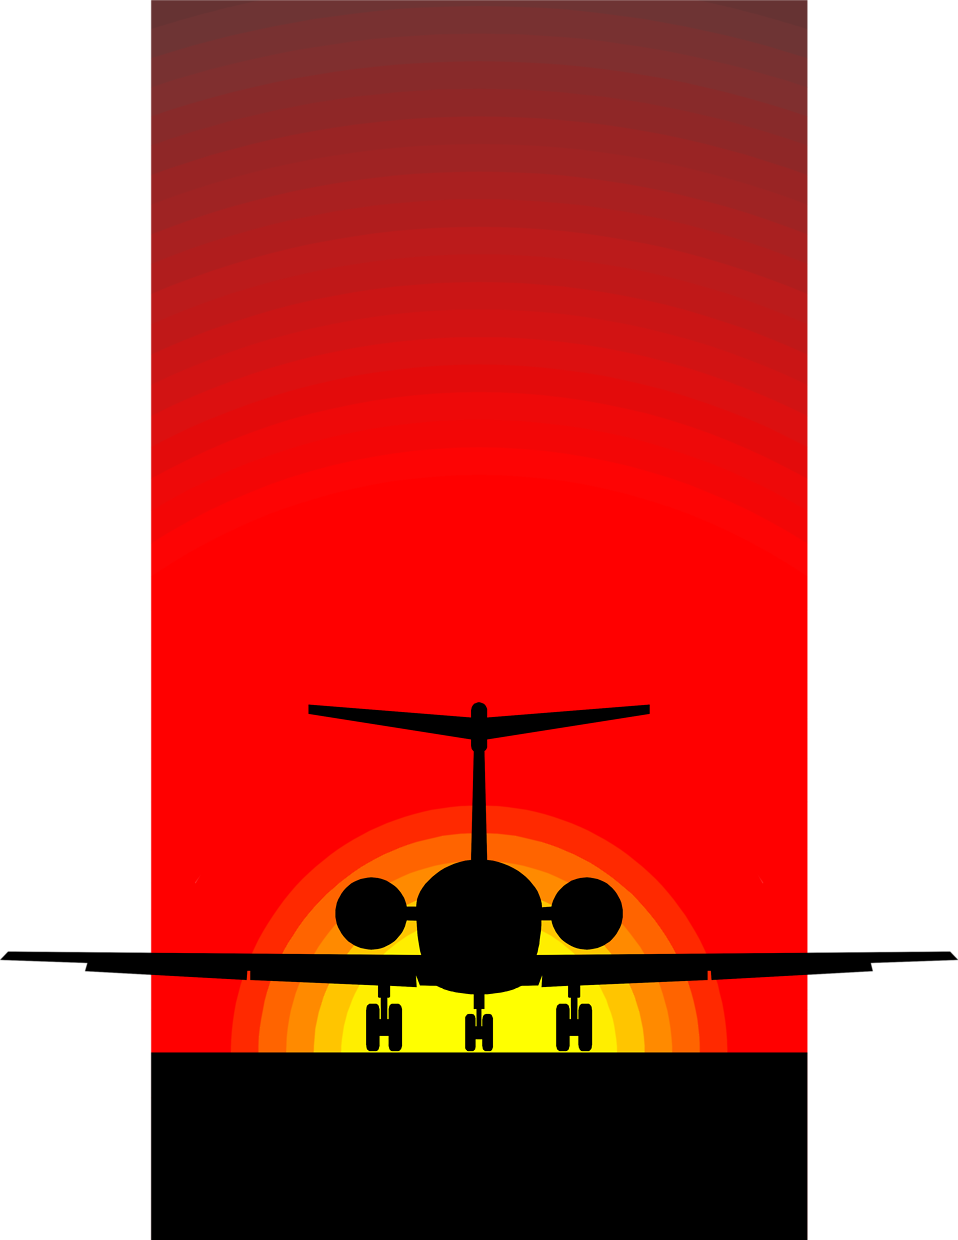 Sunset clipart road sunset. Airplane free stock photo